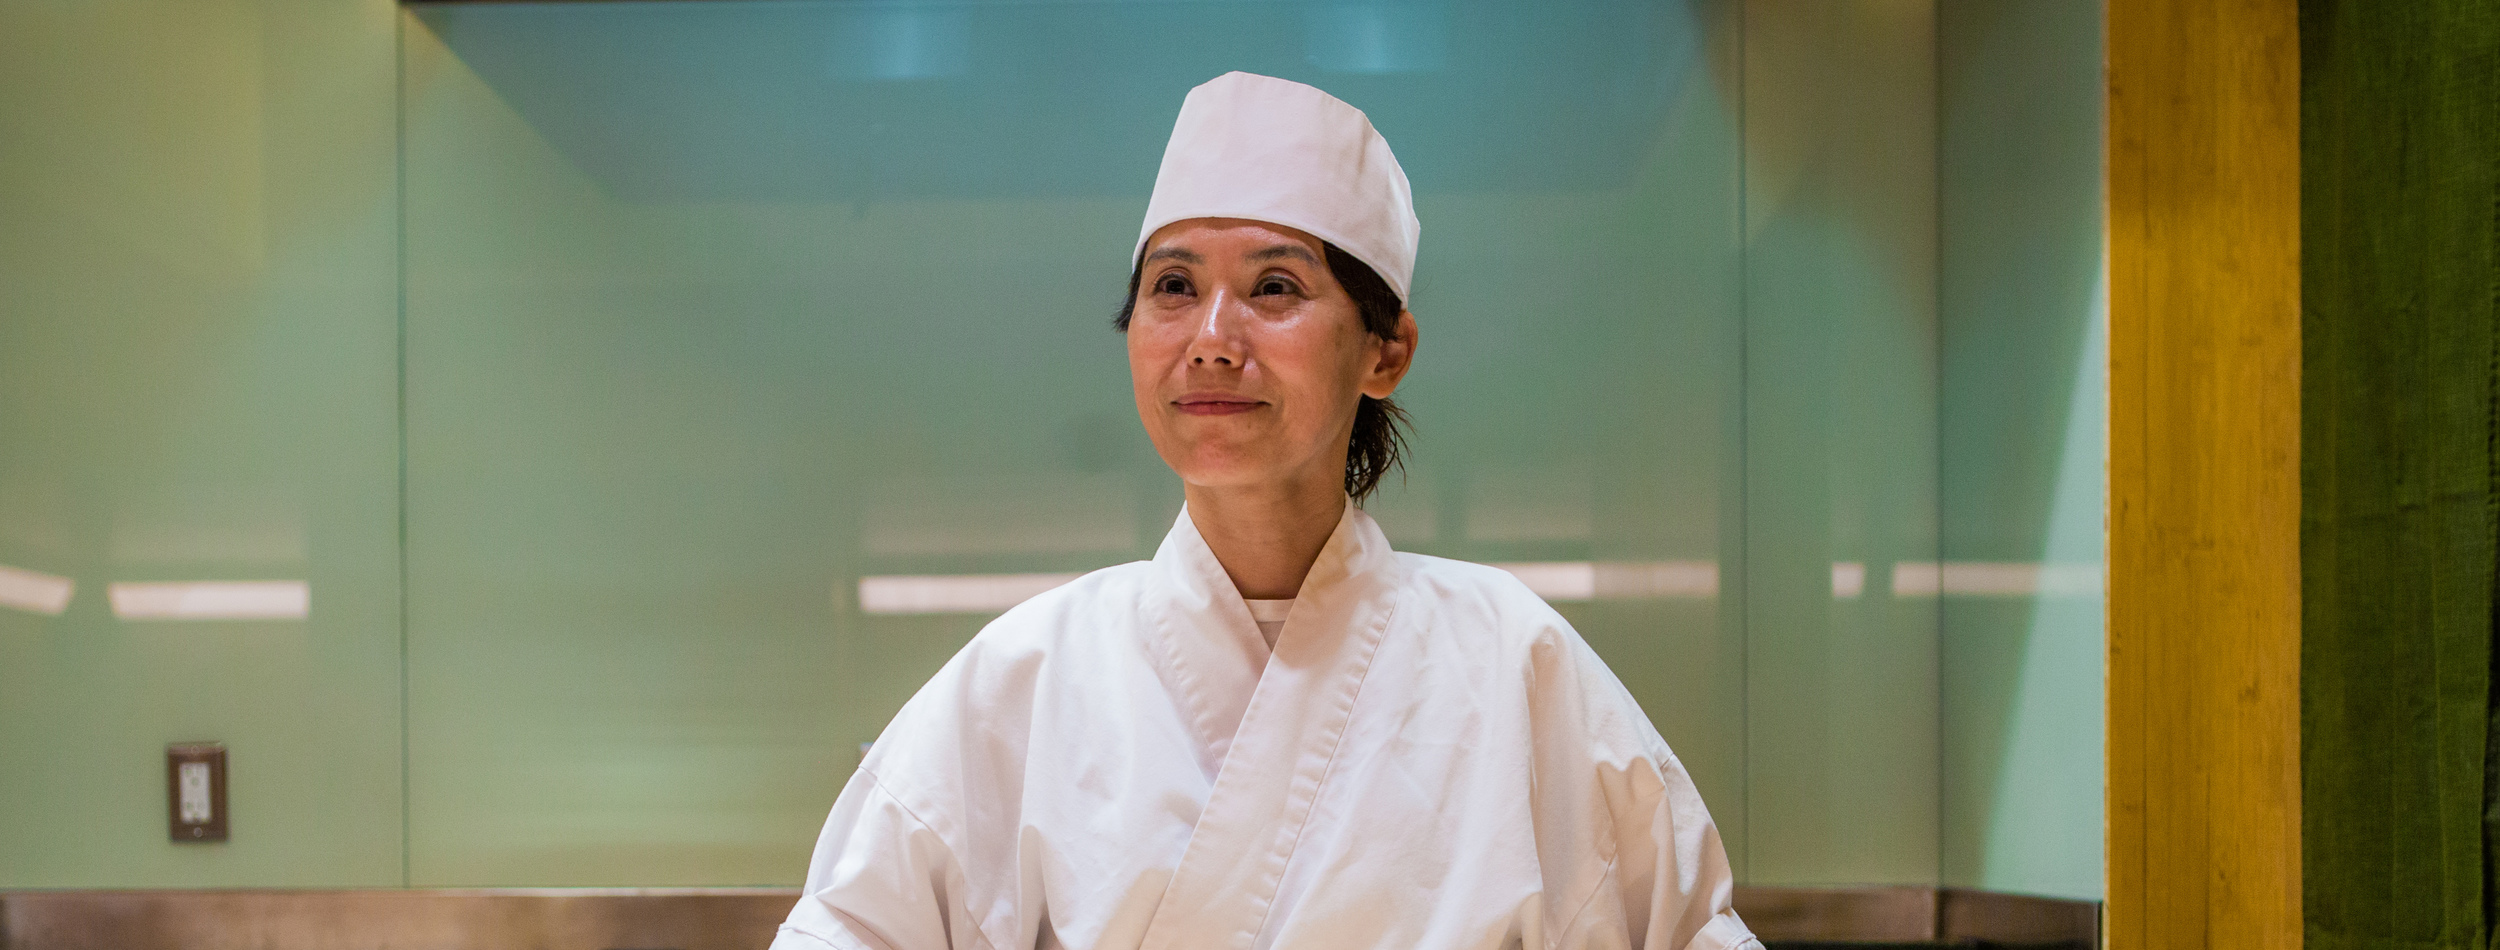 """Women are too temperamental"" to be sushi chefs    Women have been excluded from the world of sushi for a number of ludicrous reasons, including the temperature of their hands — but not this trailblazing chef, Nakaba Miyazaki."